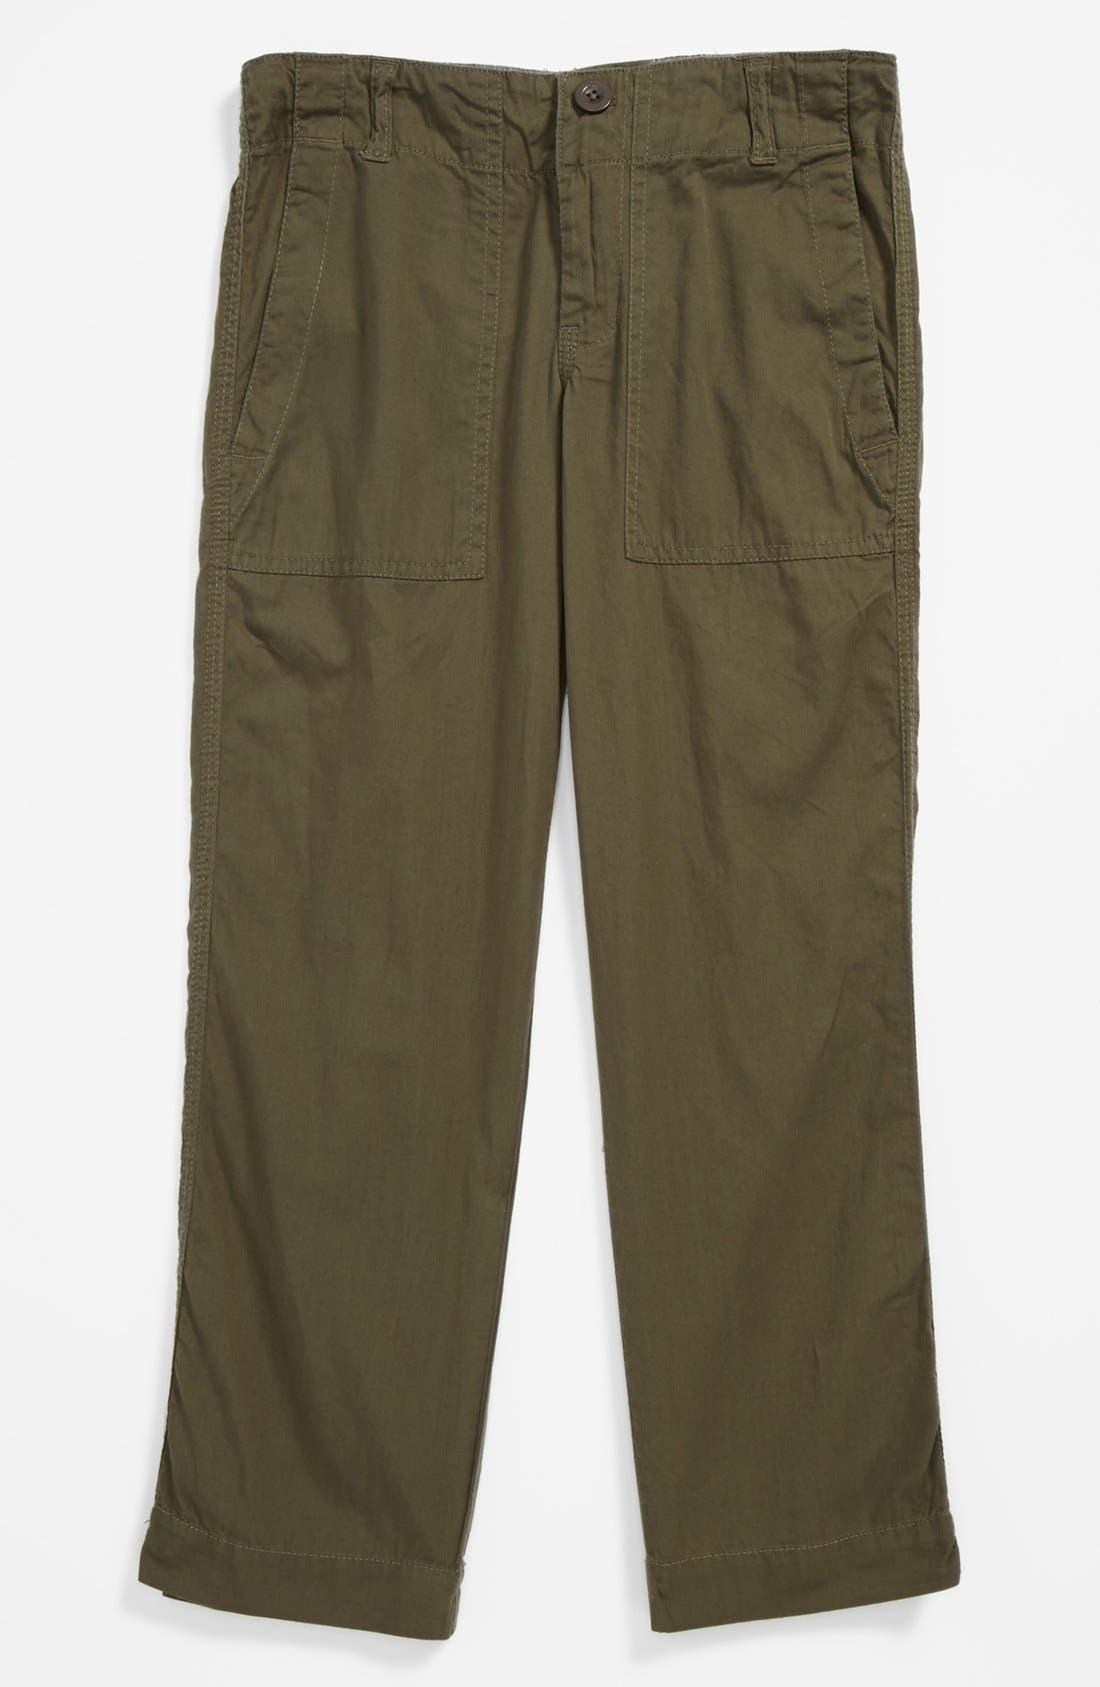 Main Image - Peek 'Tilden' Utility Pants (Big Boys)